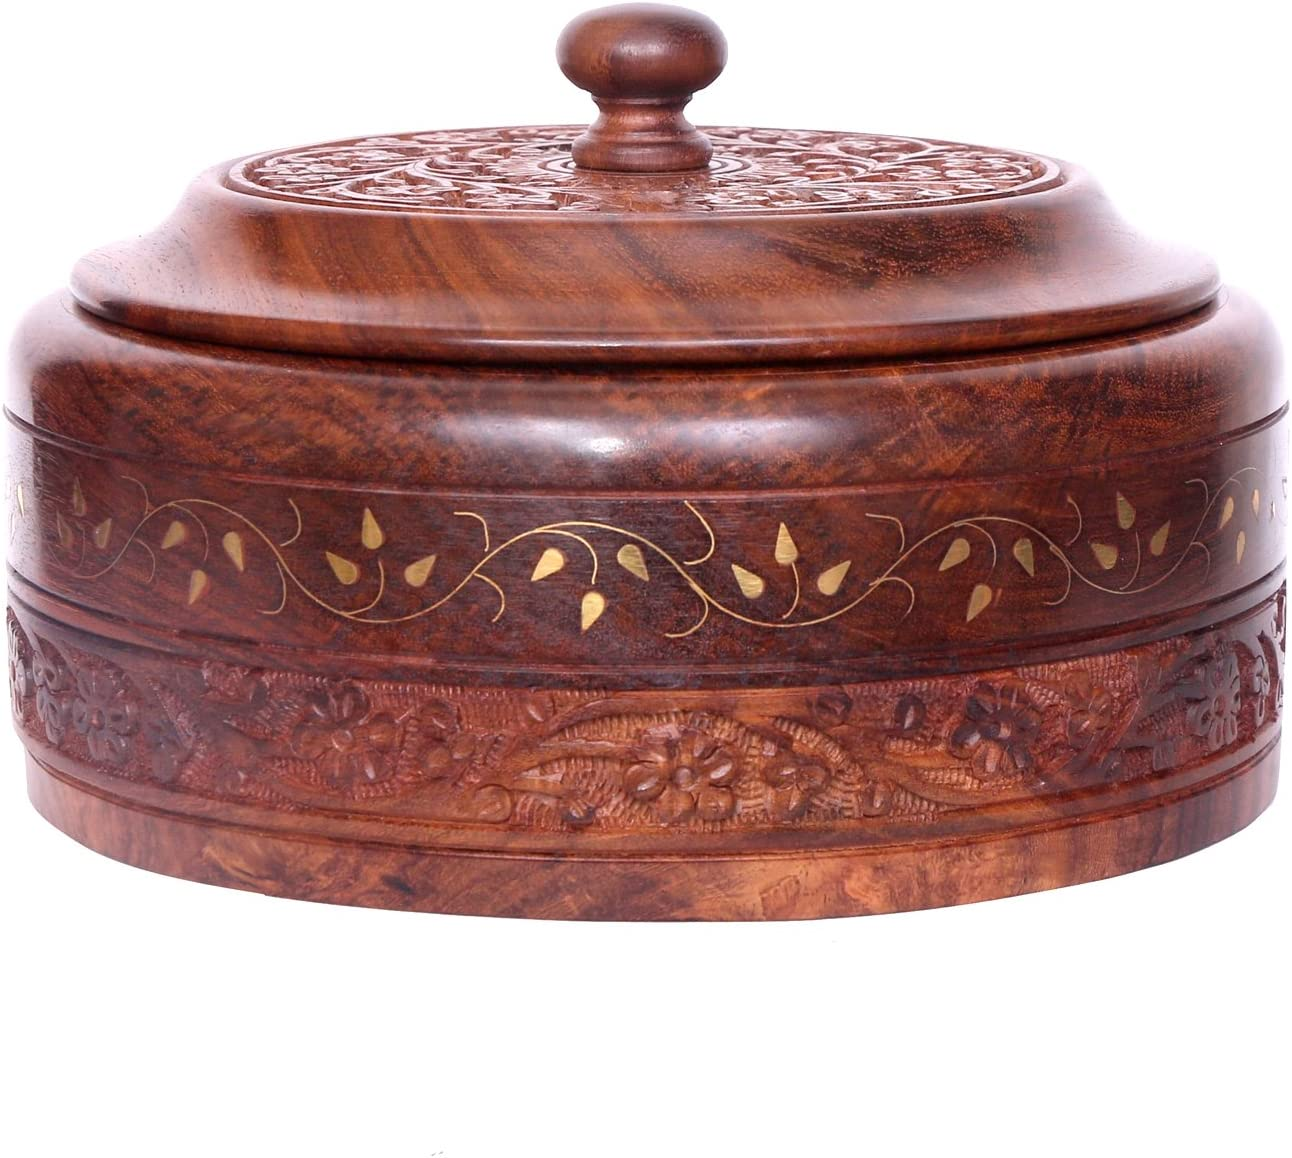 WILLART Wooden Hot Pot Casserole Dish with Lid, Tortilla Chapati Keeper/Warmer Casserole With Copper Finish Kitchen Home Décor Dinning Ideal for Gift on Diwali, IED and Christmas